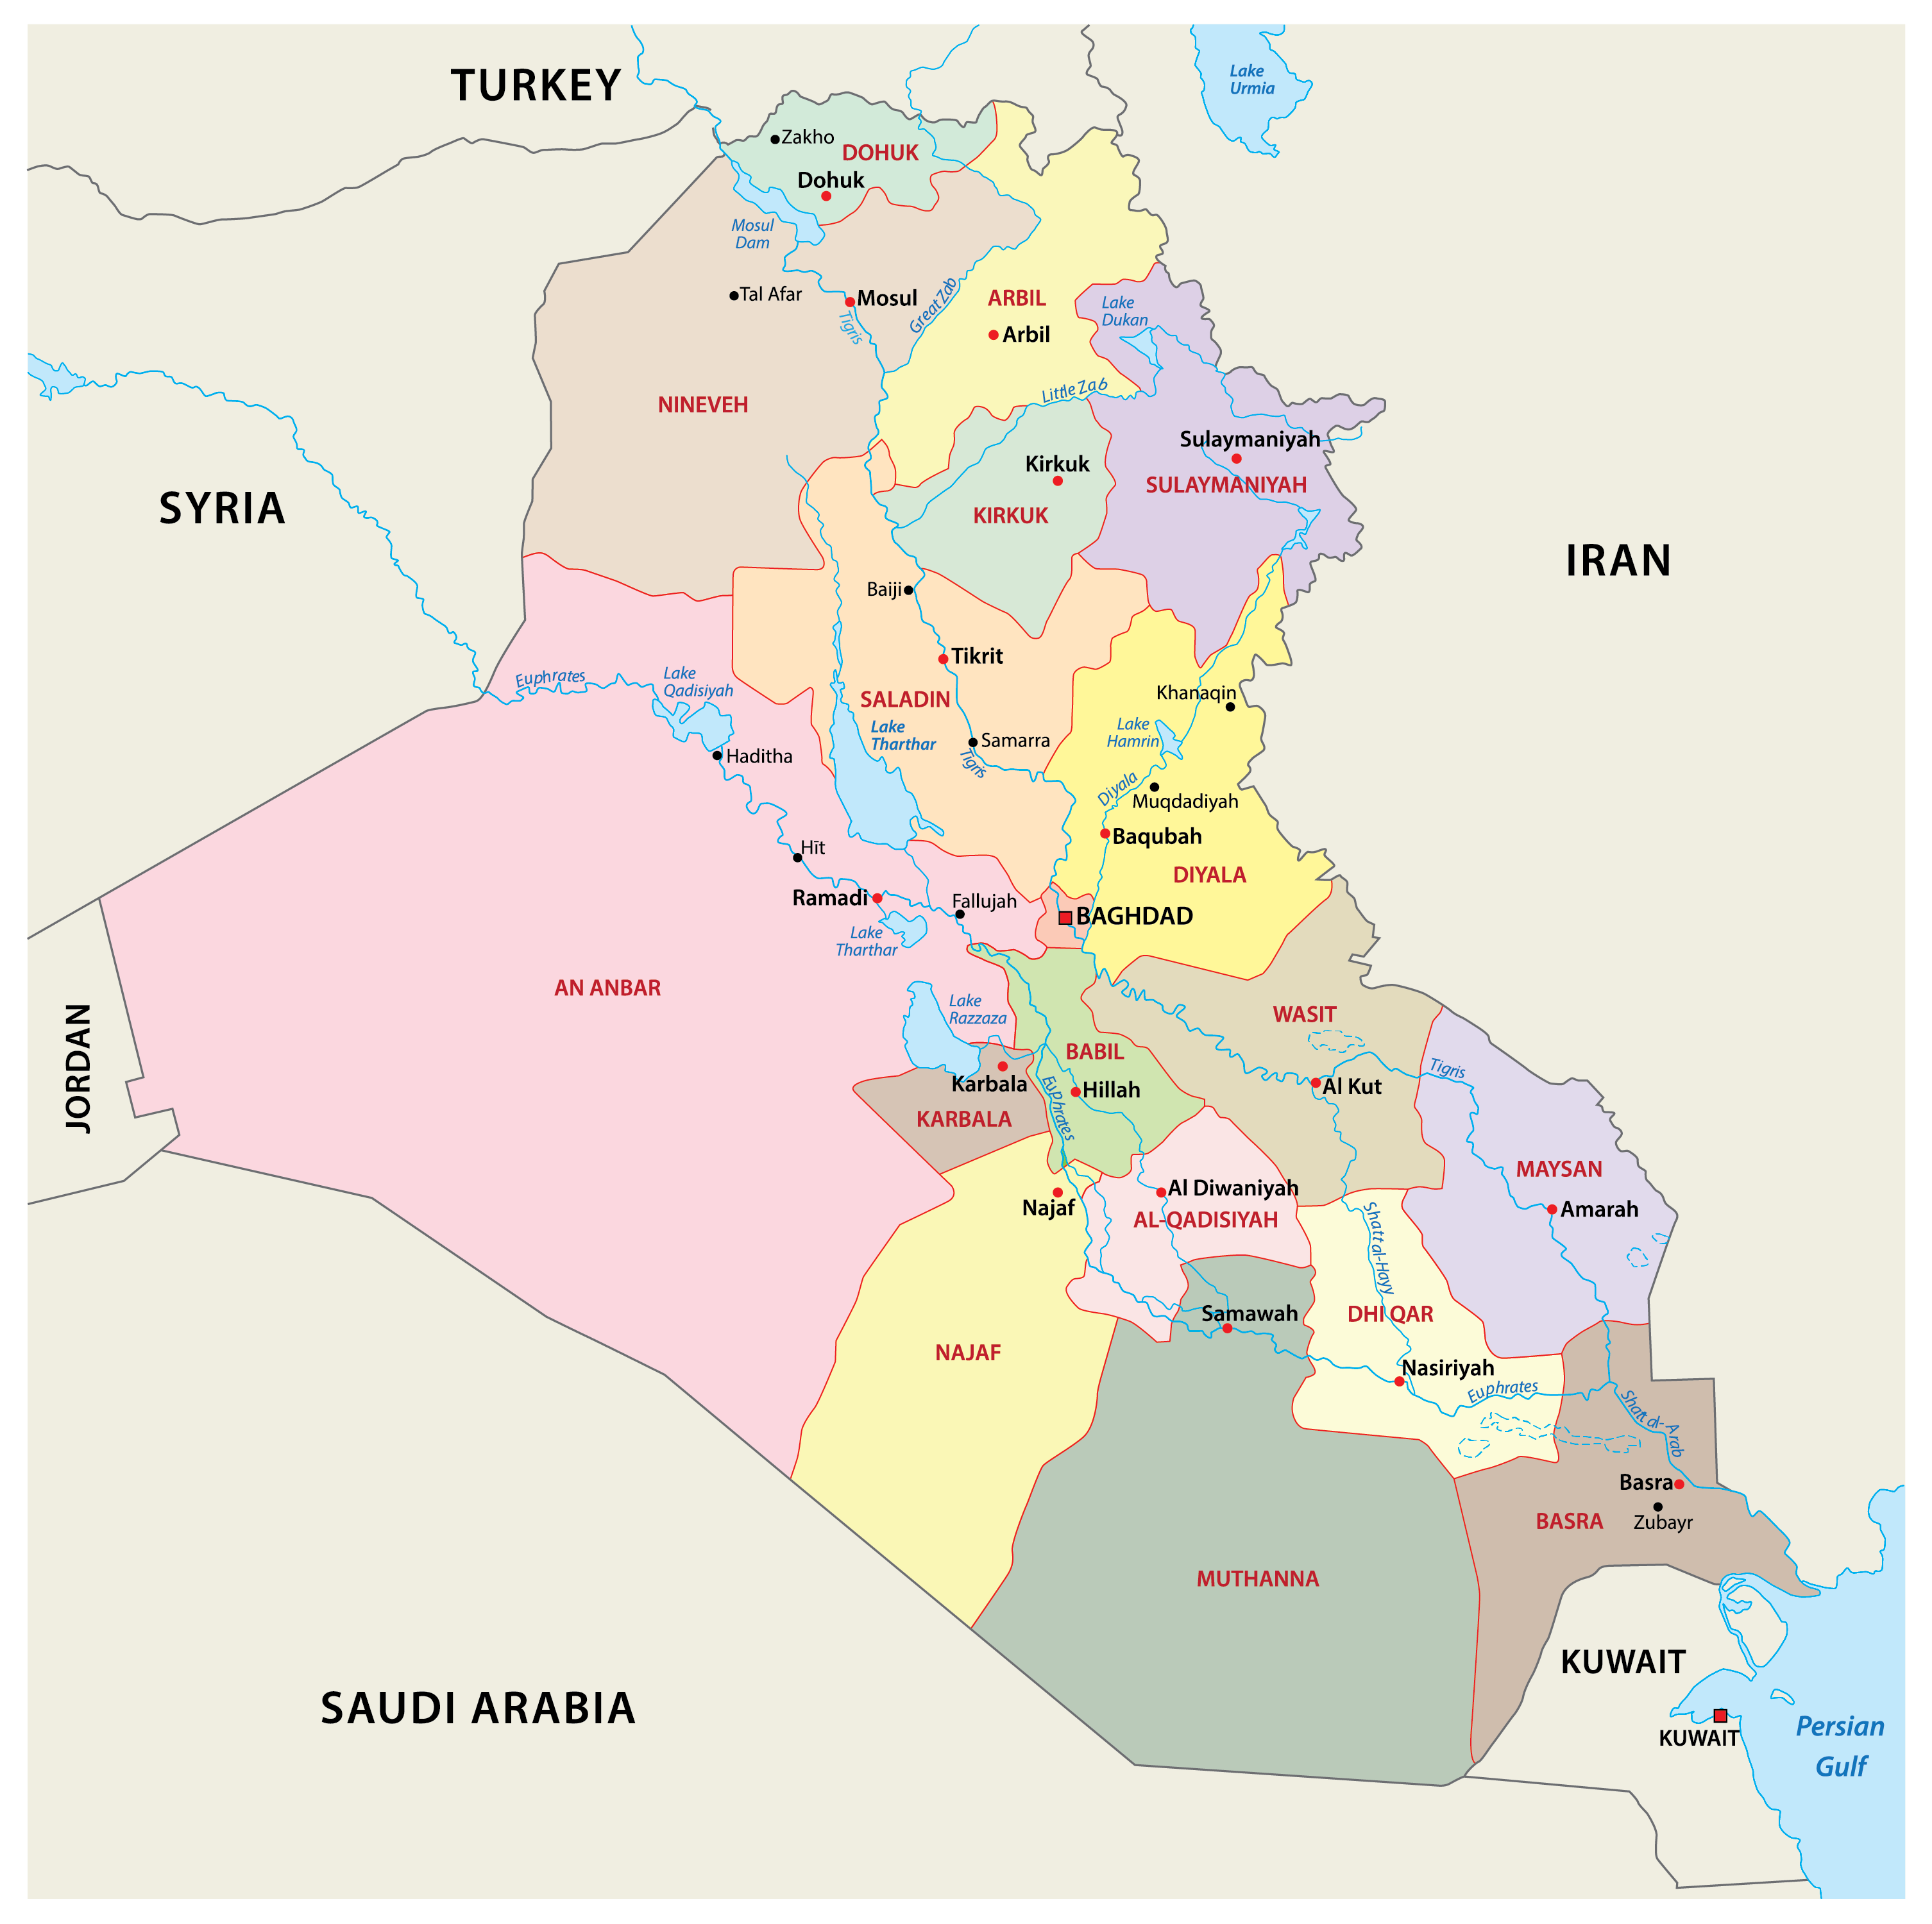 Political Map of Iraq showing the 18 governorates, their capital cities, and the national capital of Baghdad.